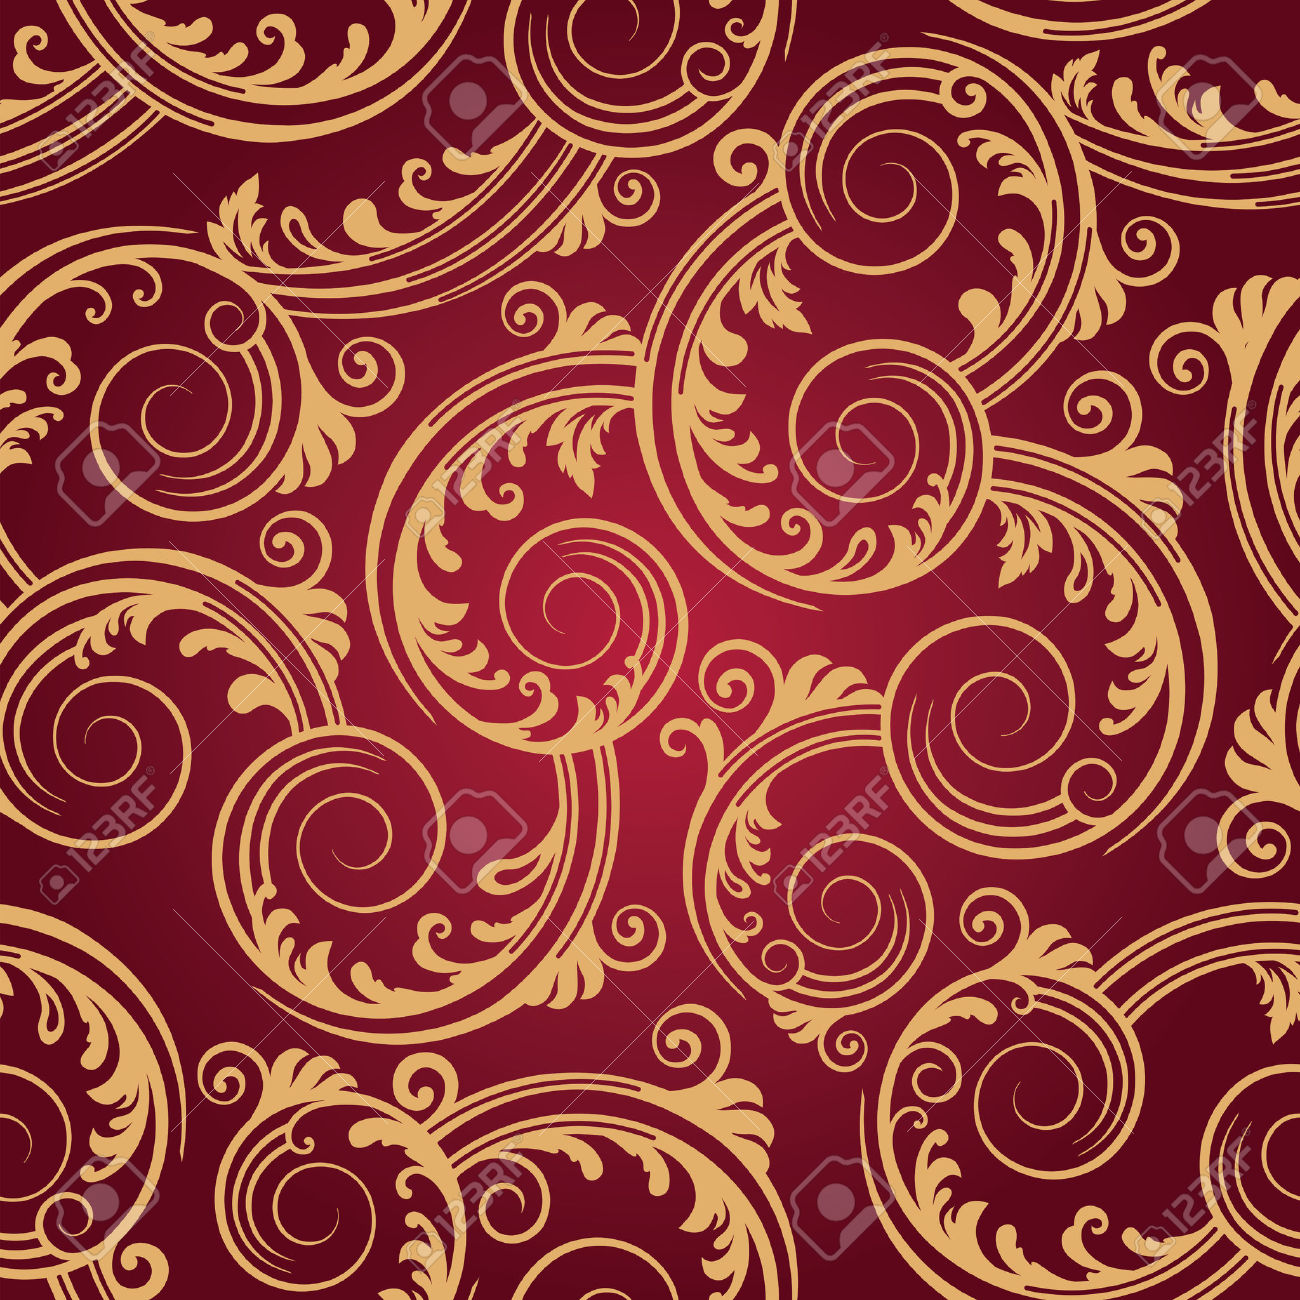 Pain Wallpaper Quotes Download Red Gold Wallpaper Designs Gallery